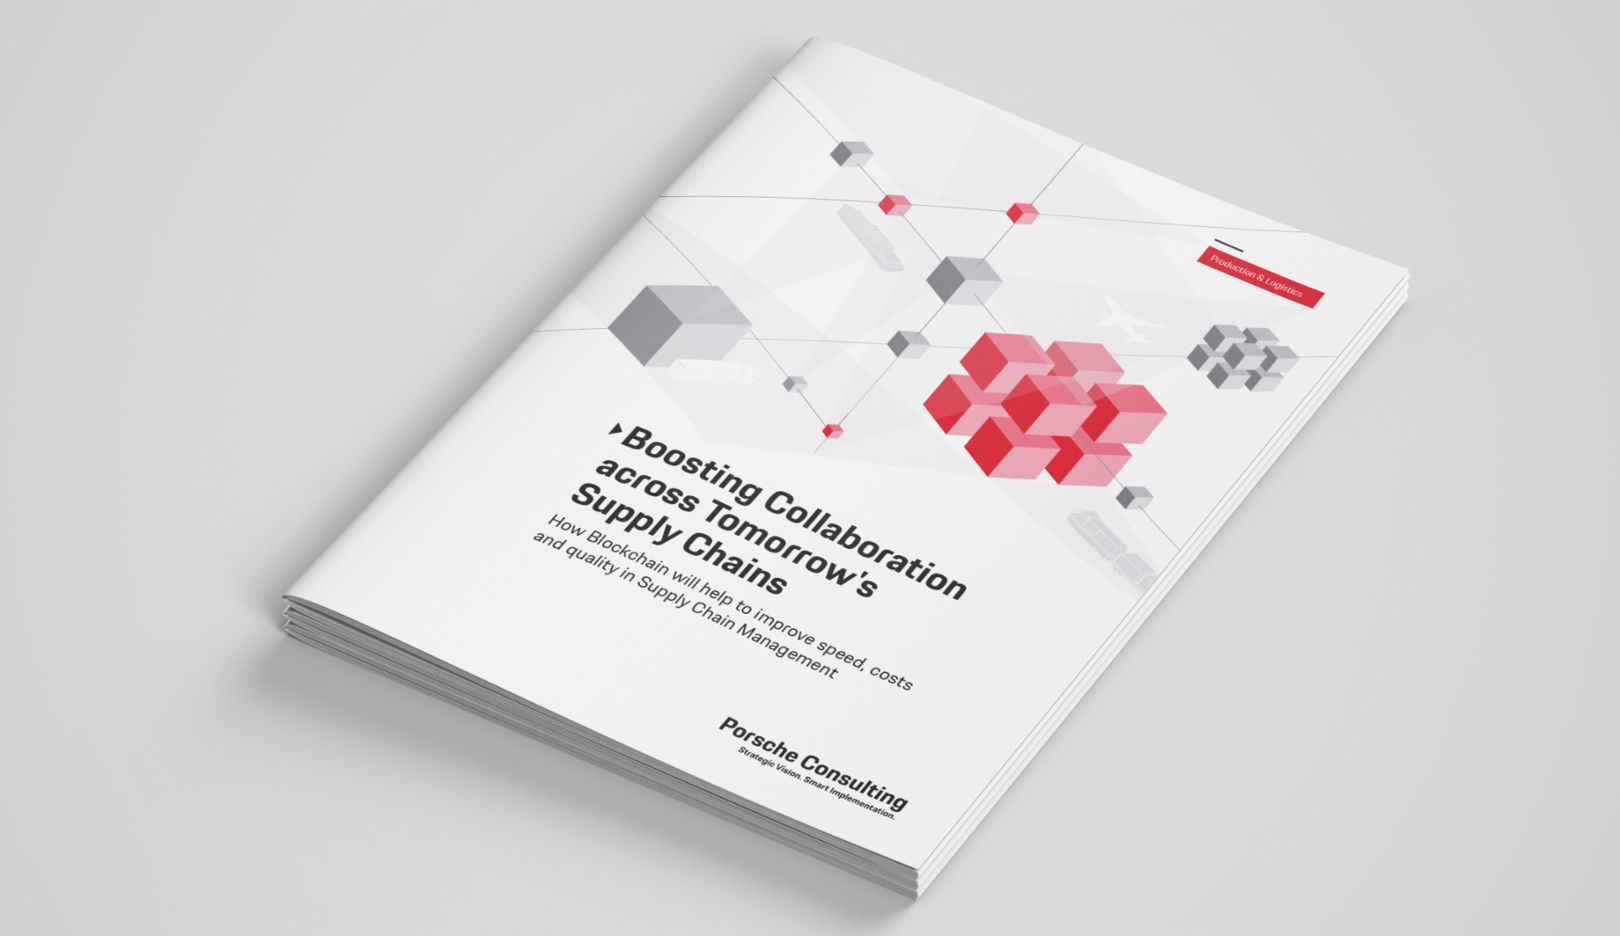 Boosting Collaboration across Tomorrow's Supply Chains, Whitepaper, 2020, Porsche Consulting GmbH